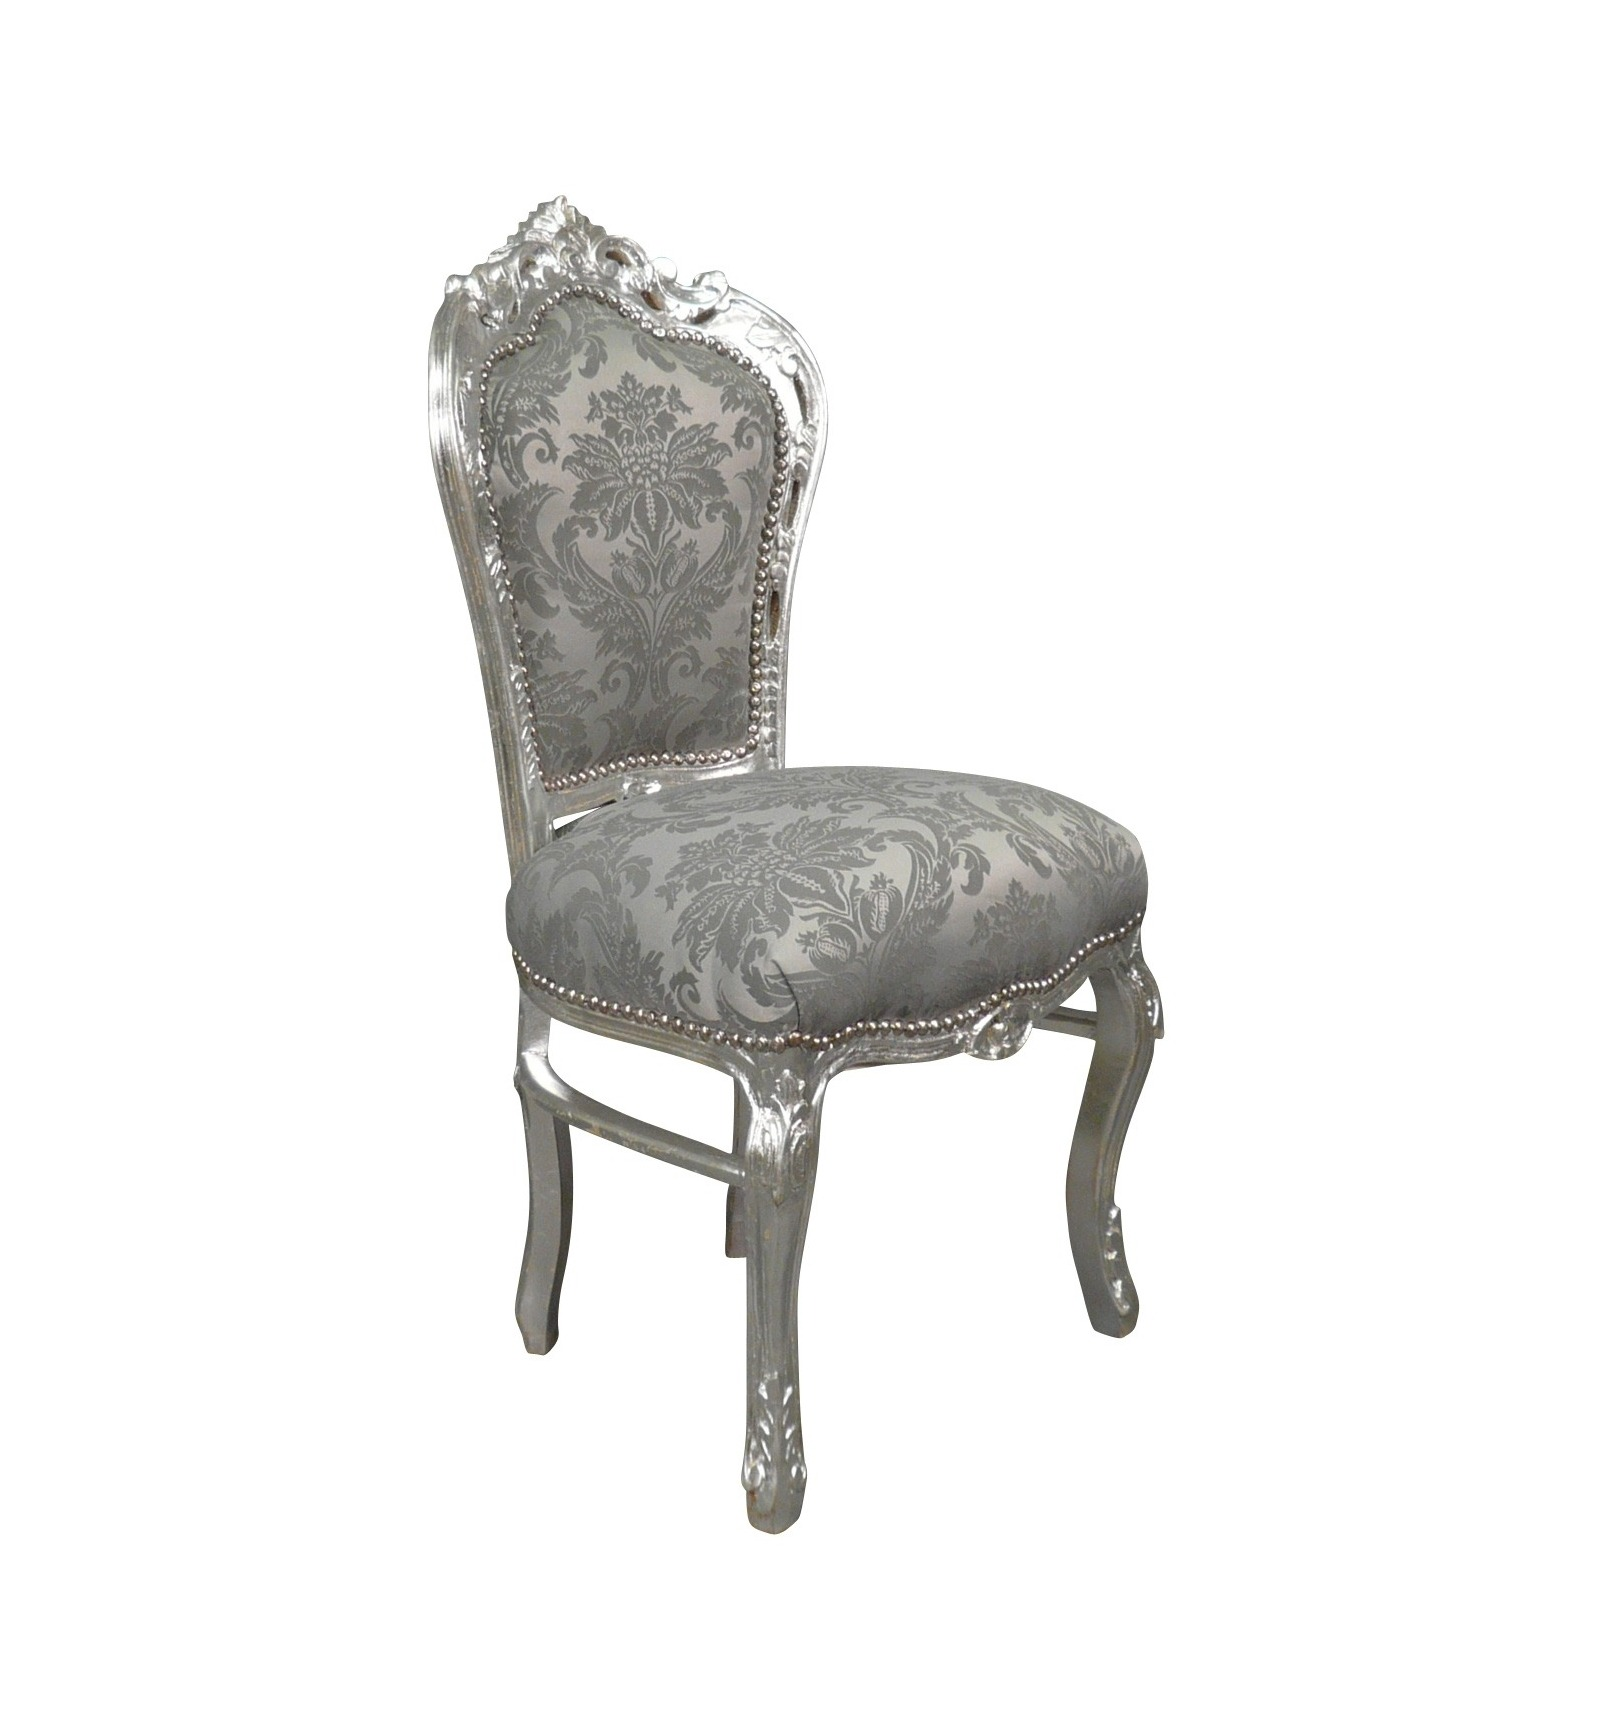 baroque chair grey fabric baroque chairs shop - Chaise Baroque